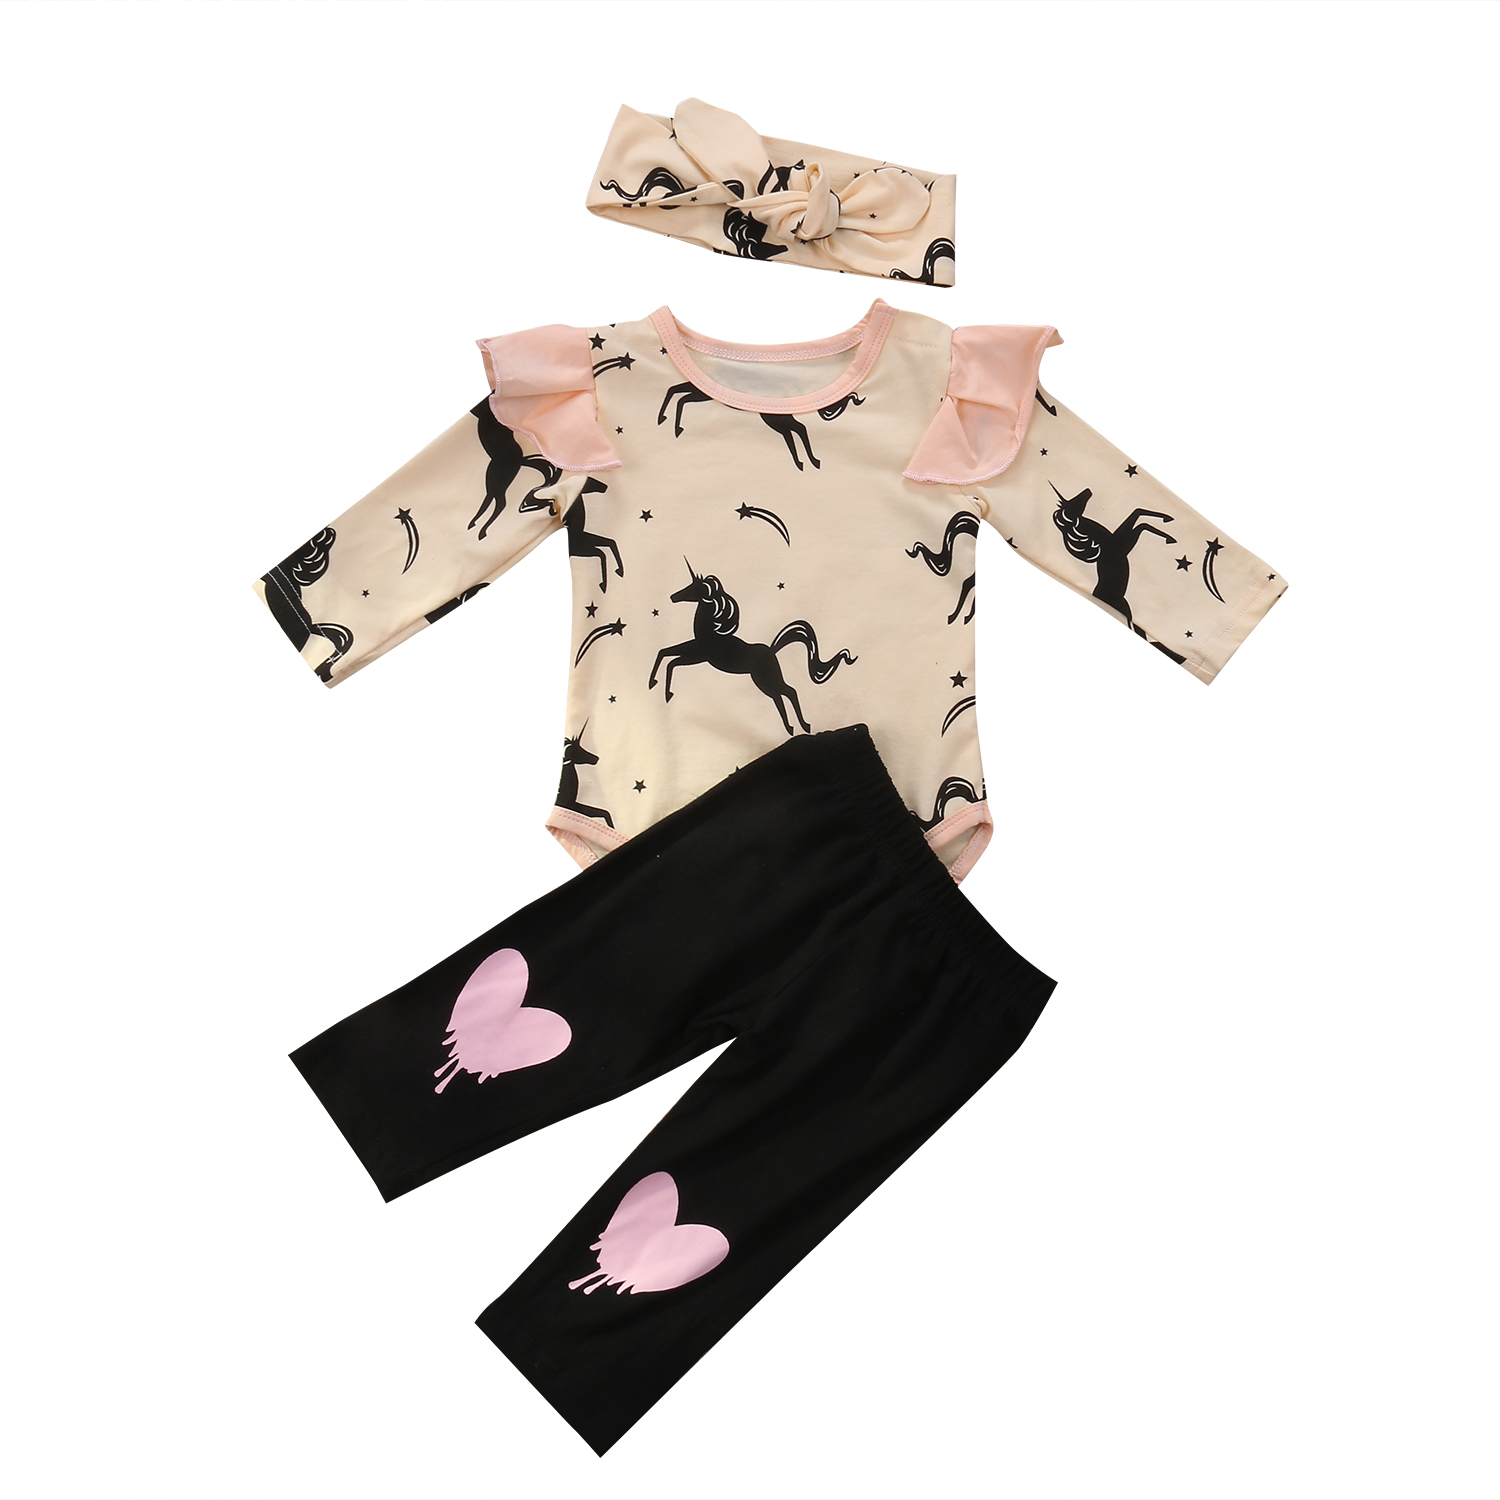 2017 New Brand Newborn Toddler Infant Baby Girl Kids Bodysuit Long SleeveT-shirt Long Pants Headband 3Pcs Set Outfit Clothes minnie newborn baby girl clothes gold ruffle infant bodysuit bloomer headband set winter jumpsuit toddler birthday outfits